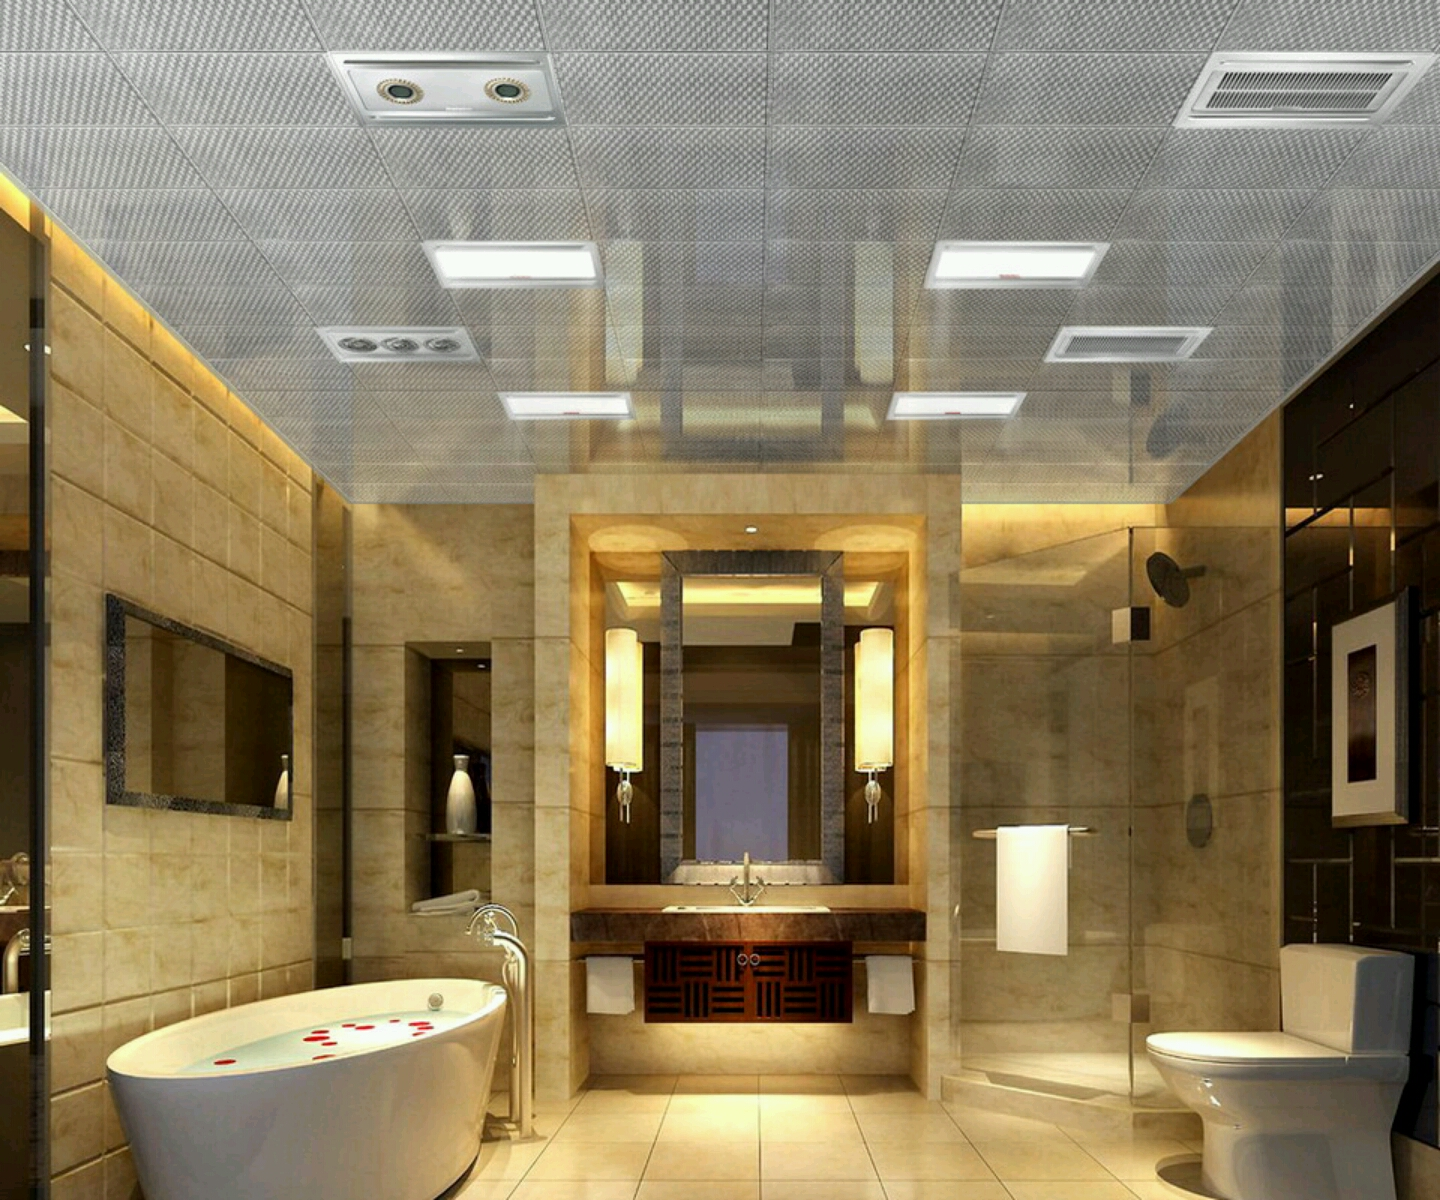 Design In DesignPX Luxury Bathroom Design Ideas